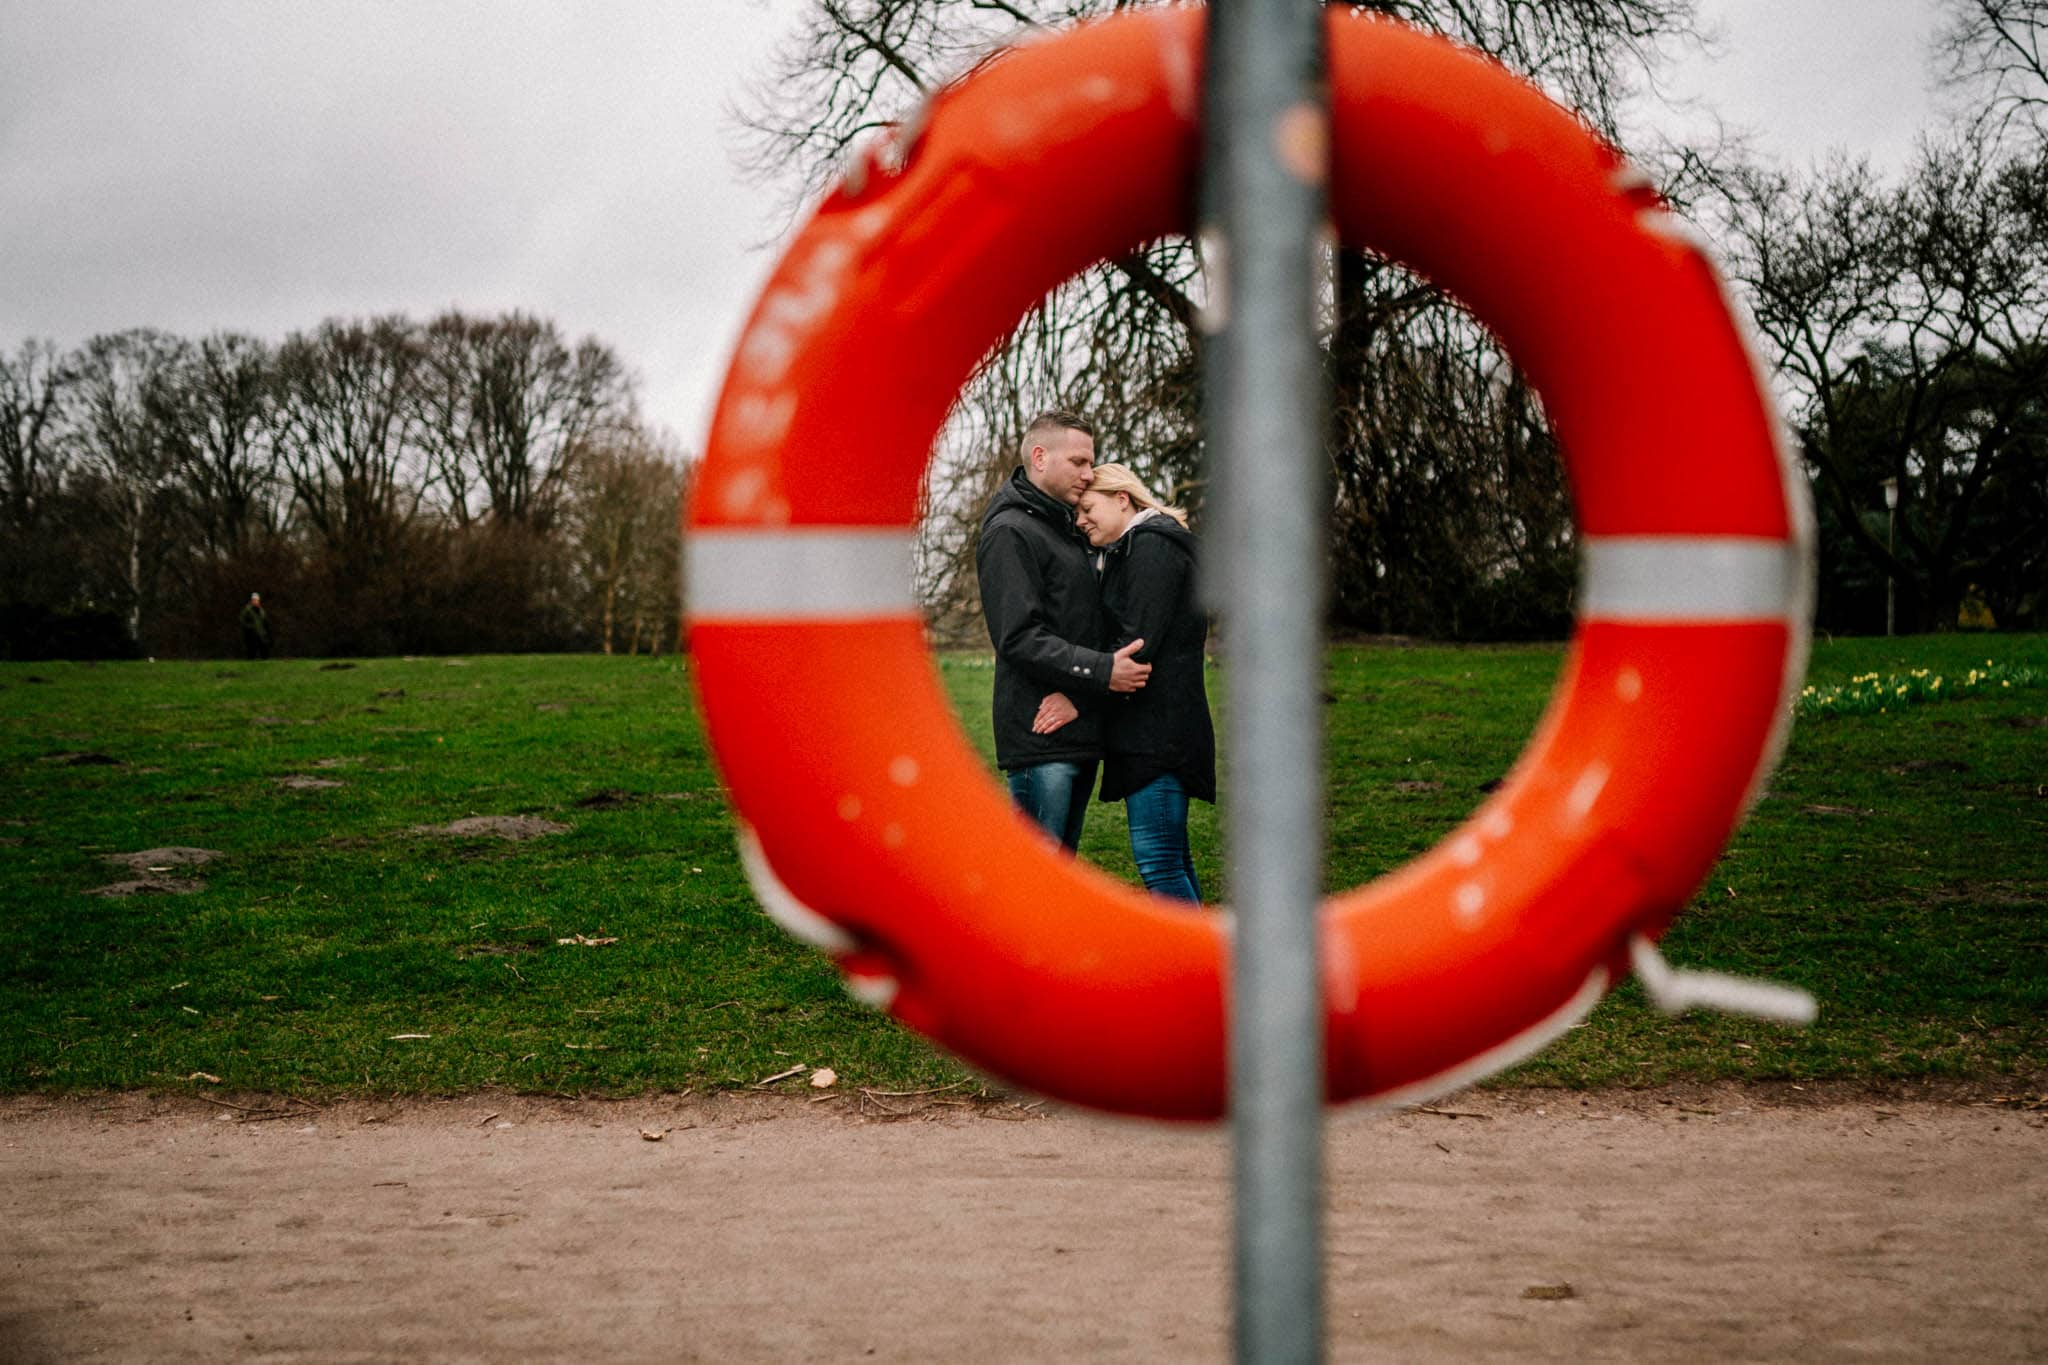 Engagementshooting, Hochzeitsfieber by Photo-Schomburg, Pärchenshoot, Hamburg, Elbe, Hamburger Hafen, Hochzeitsfotograf, Wedding, Coupleshoot, Hochzeitsfotografie-5-13